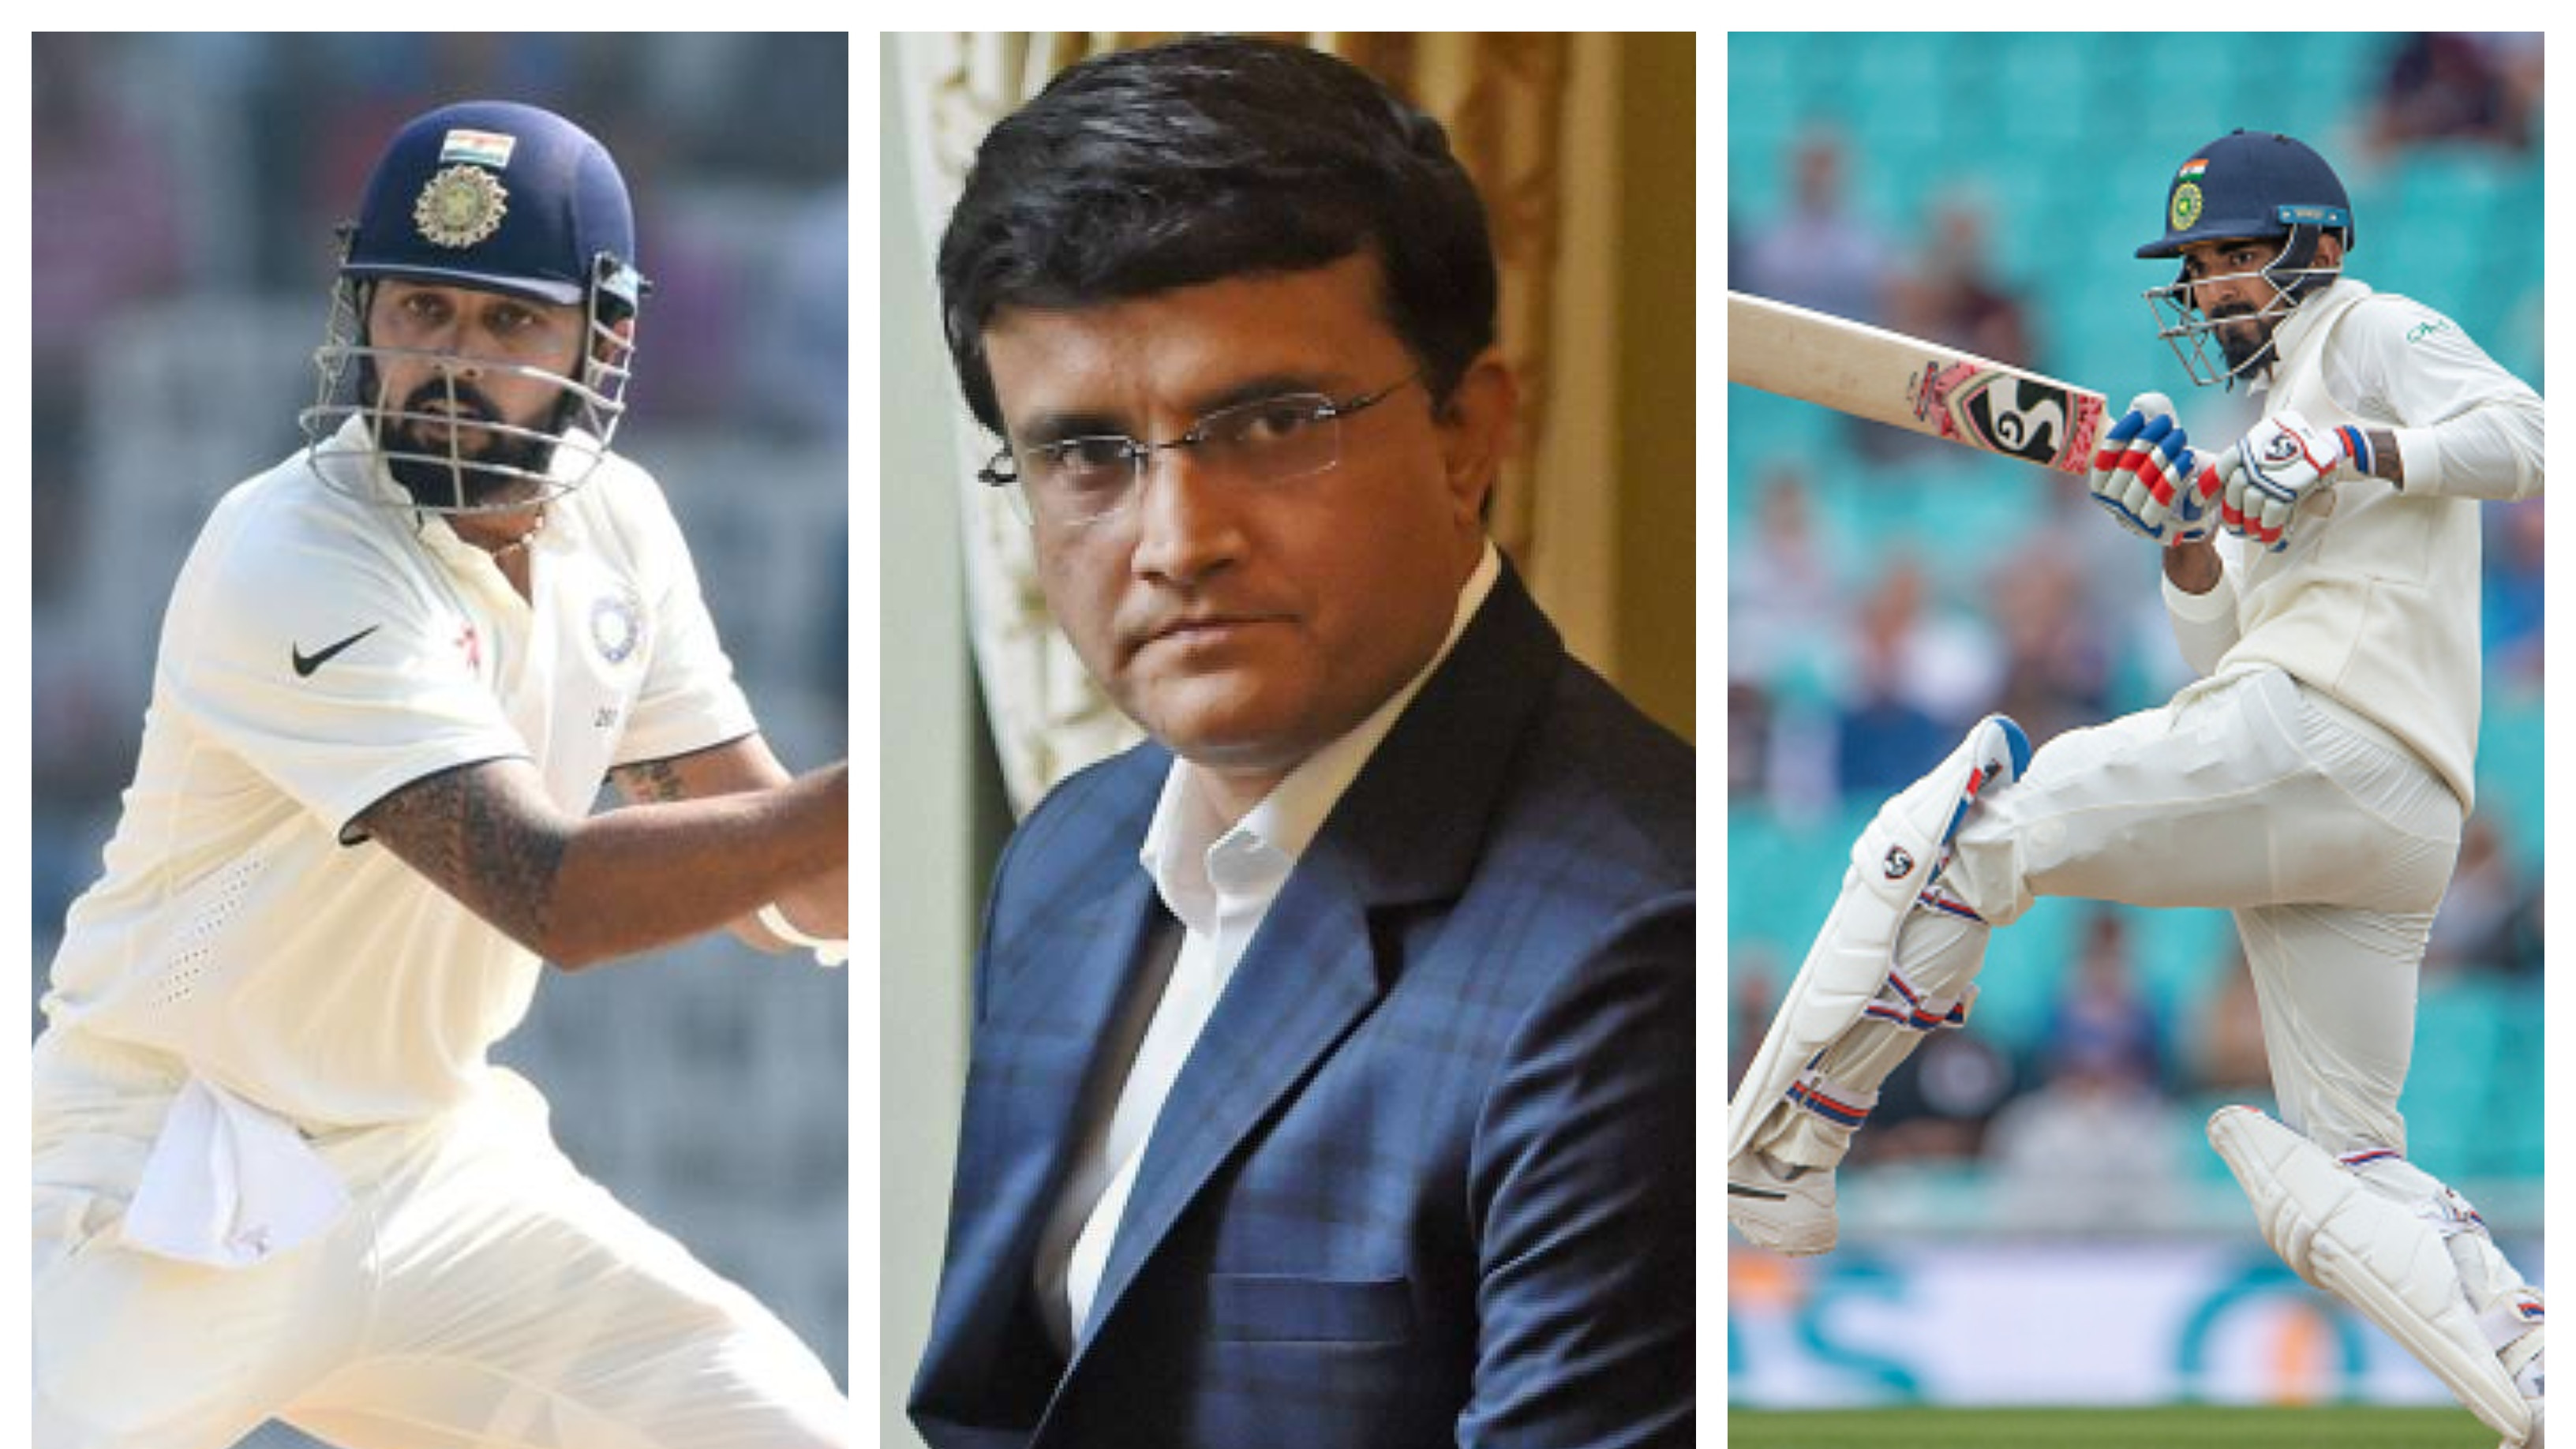 AUS v IND 2018-19: Ganguly critical of Indian openers' poor performance in Perth